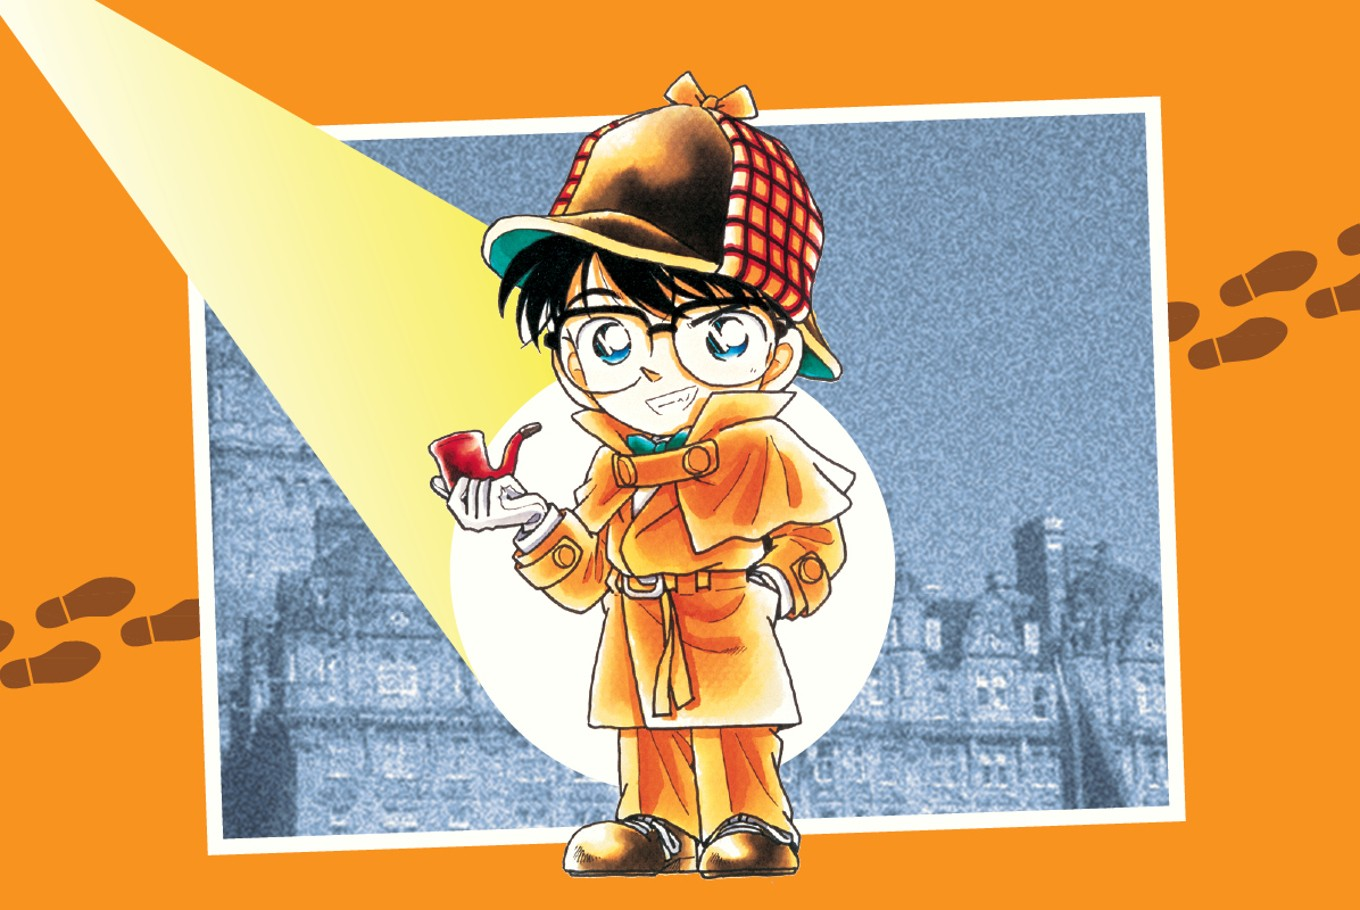 Japanese comic 'Detective Conan' to return after 4-month hiatus